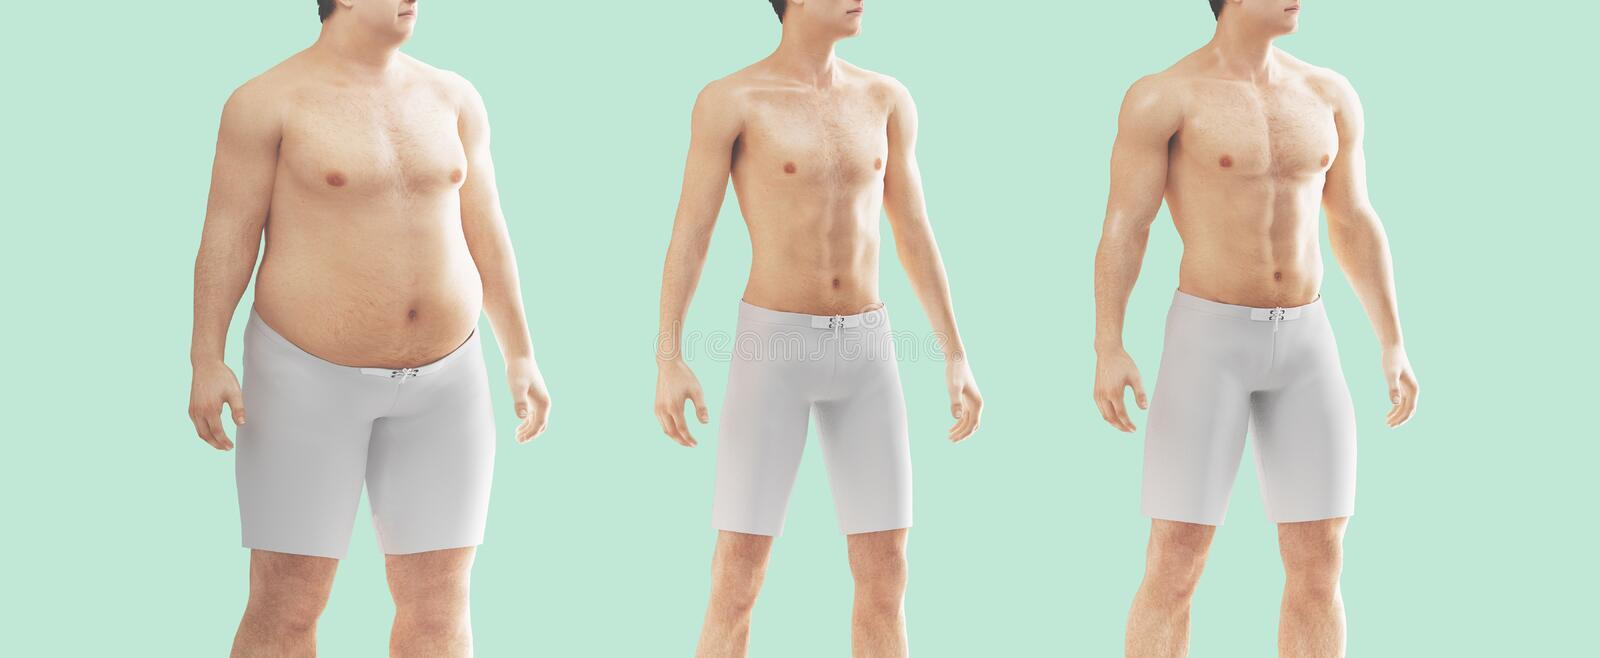 MAn body fat and thin, diet, gym stock photography